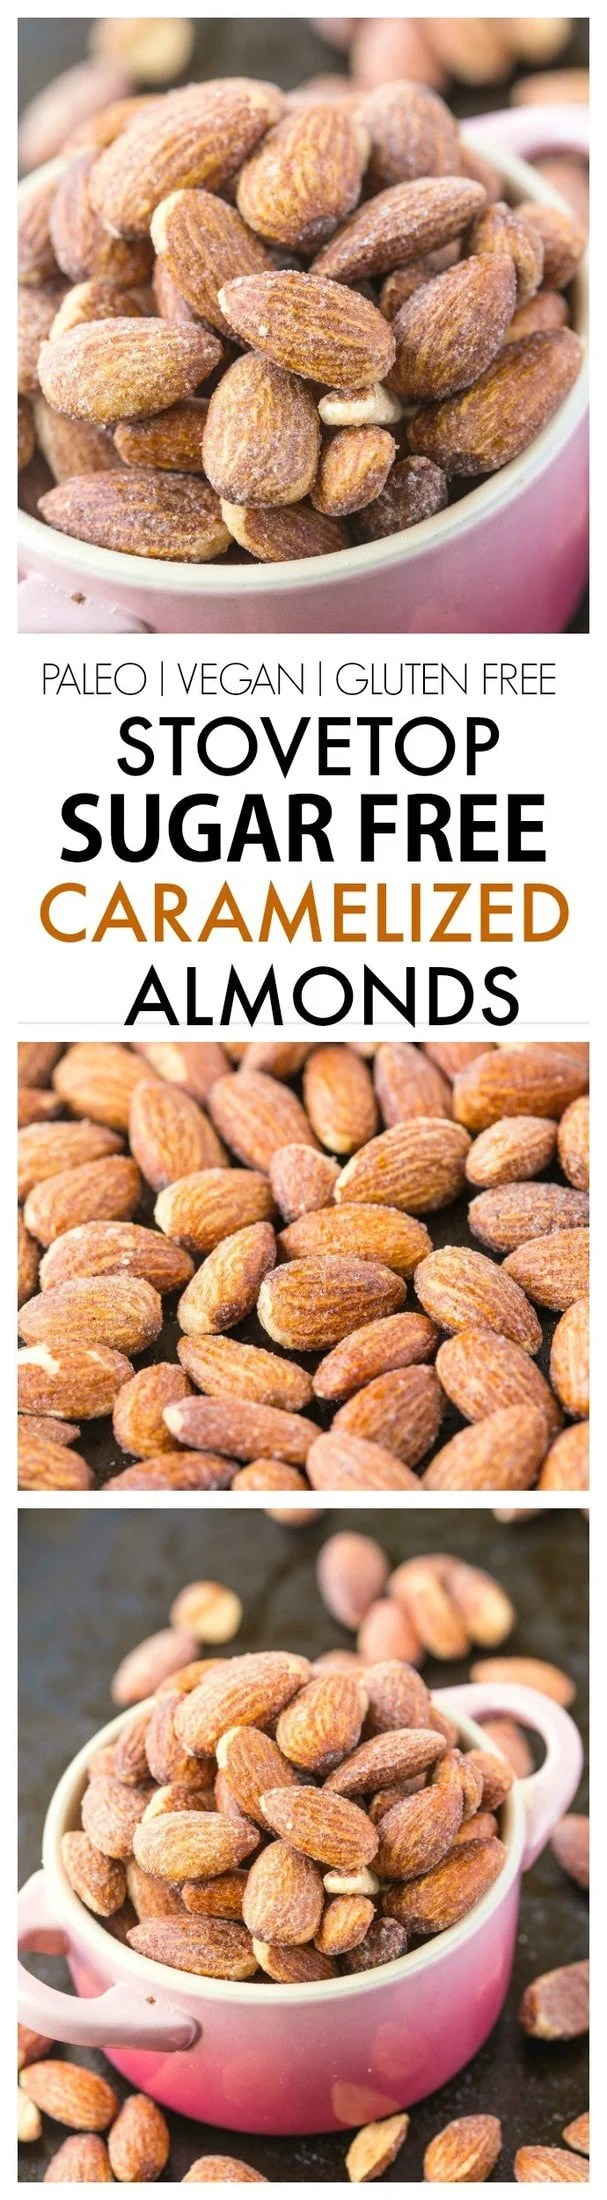 Stovetop Sugar Free Caramelized Nuts- Using a natural granulated sweetener, it's completely sugar free and SO delicious, made over the stove! {vegan, gluten free, paleo recipe}